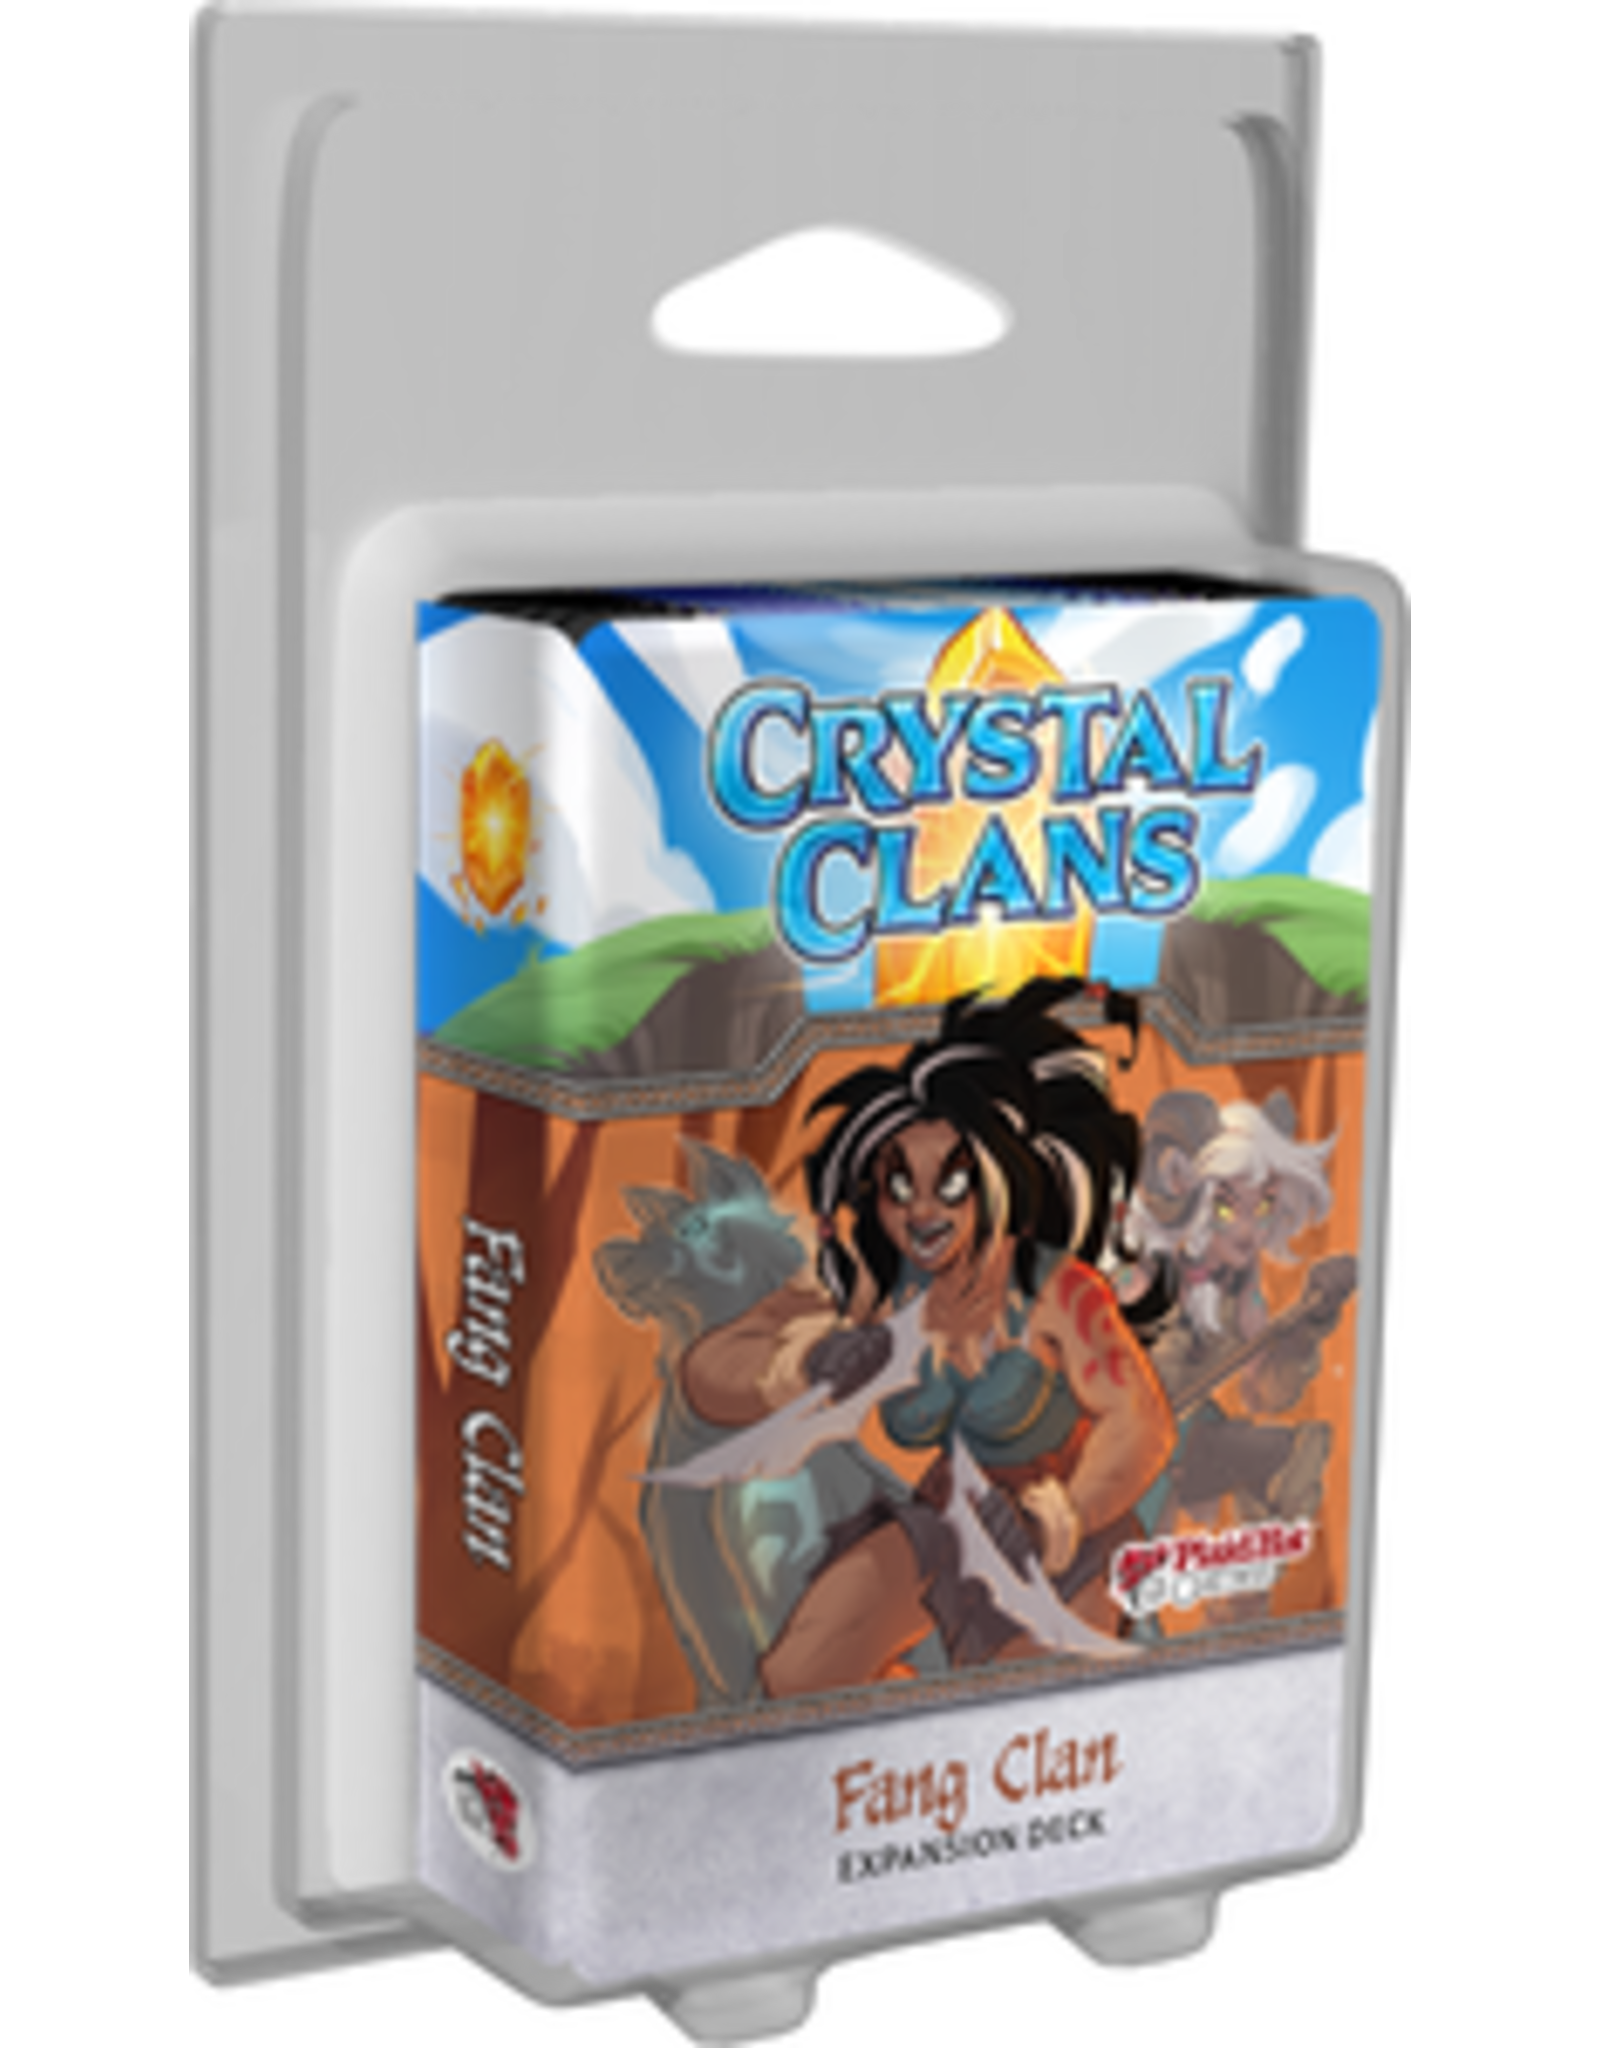 Crystal Clans: Fang Clan Expansion Deck